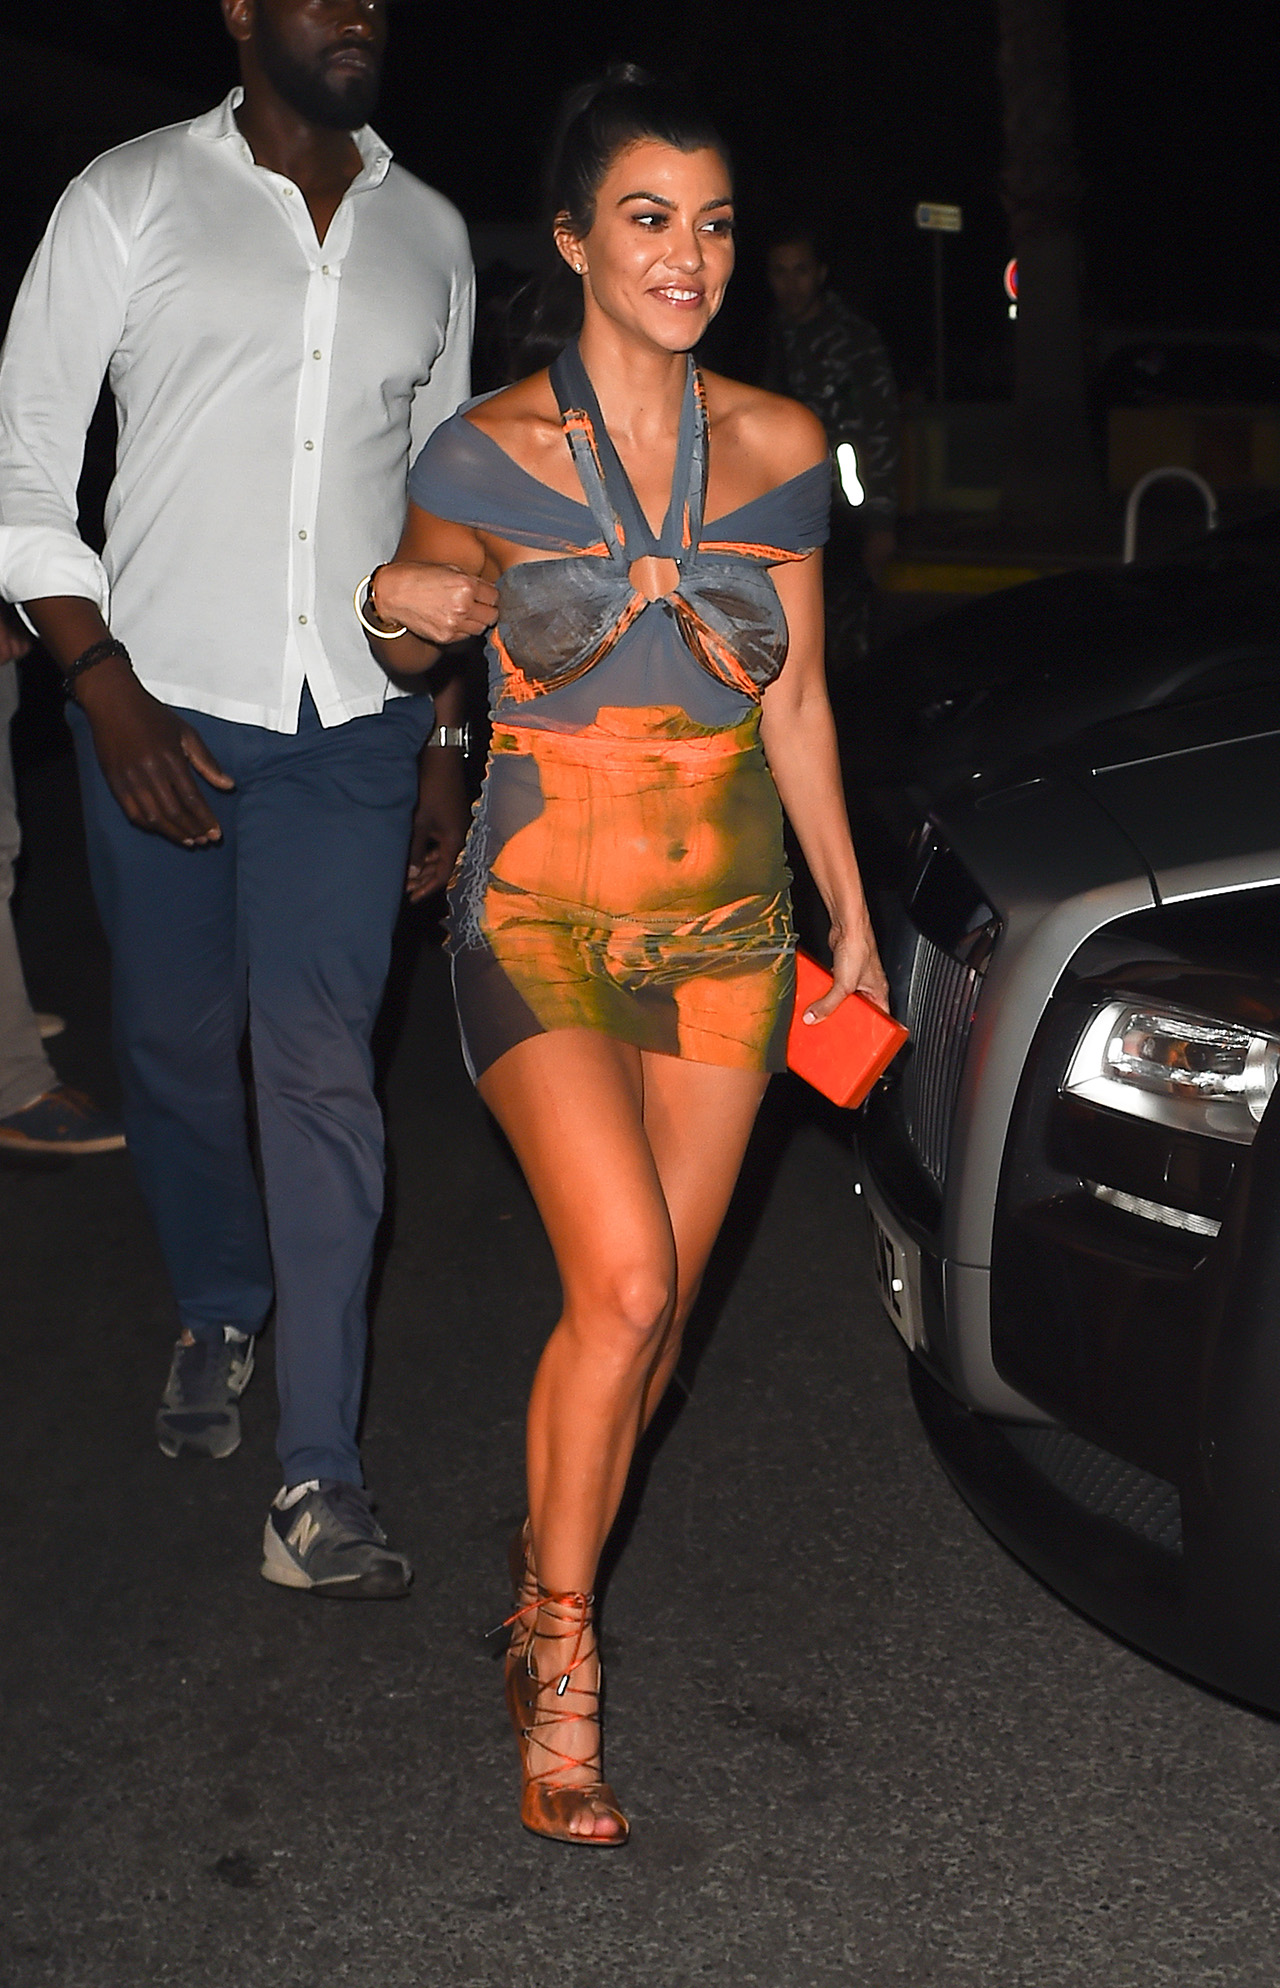 Kourtney Kardashian & Younes Bendjima are seen leaving Gotha nightclub in Cannes at 4am, Kourtney looked worst for wear as she got into the wrong car, after boyfriend Younes pointed out that it was the Ferrari that they were leaving in, the couple drove back to their super yacht that they are staying on in Cannes <P> Pictured: Kourtney Kardashian ,Younes Bendjima <B>Ref: SPL1505750  230517  </B><BR/> Picture by: Neil Warner/ Eade  Splash News<BR/> </P><P> <B>Splash News and Pictures</B><BR/> Los Angeles:310-821-2666<BR/> New York:212-619-2666<BR/> London:870-934-2666<BR/> photodesk@splashnews.com<BR/> </P>